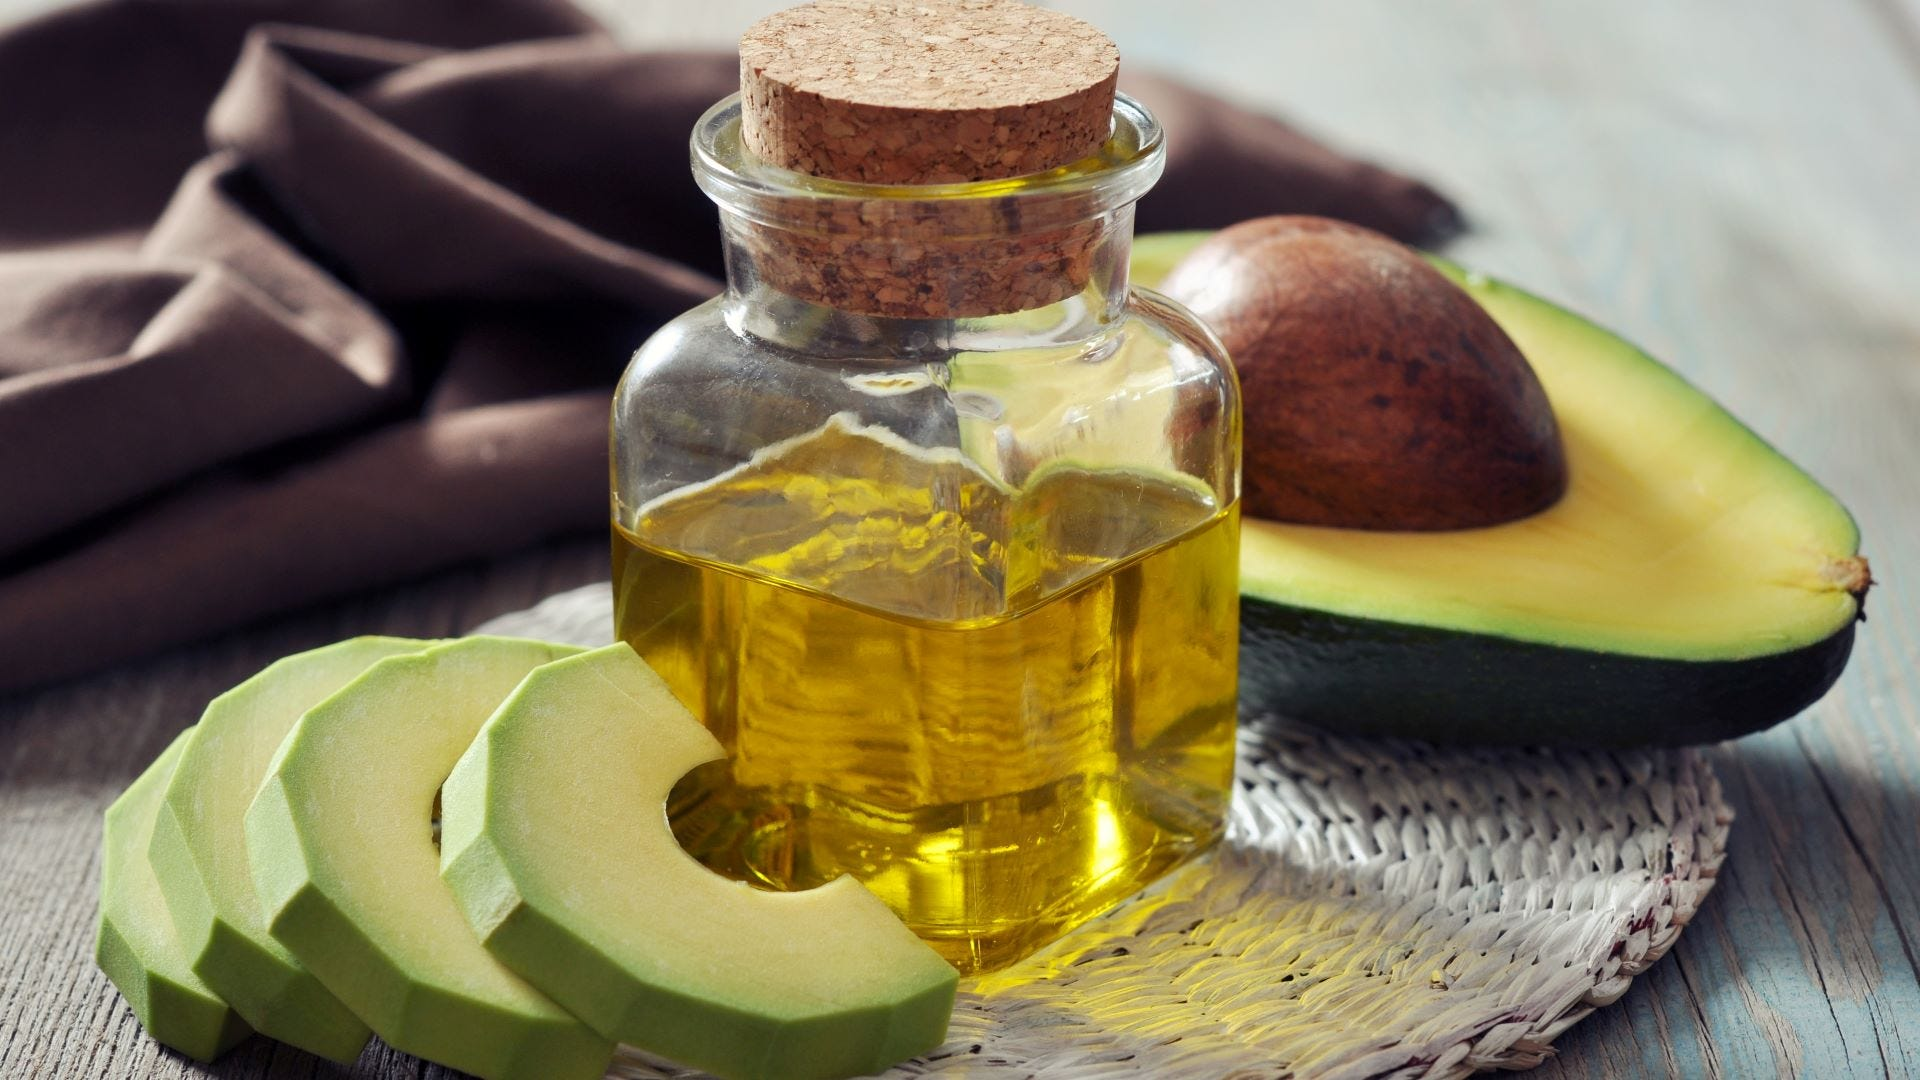 A bottle of avocado oil surrounded by sliced avocado.